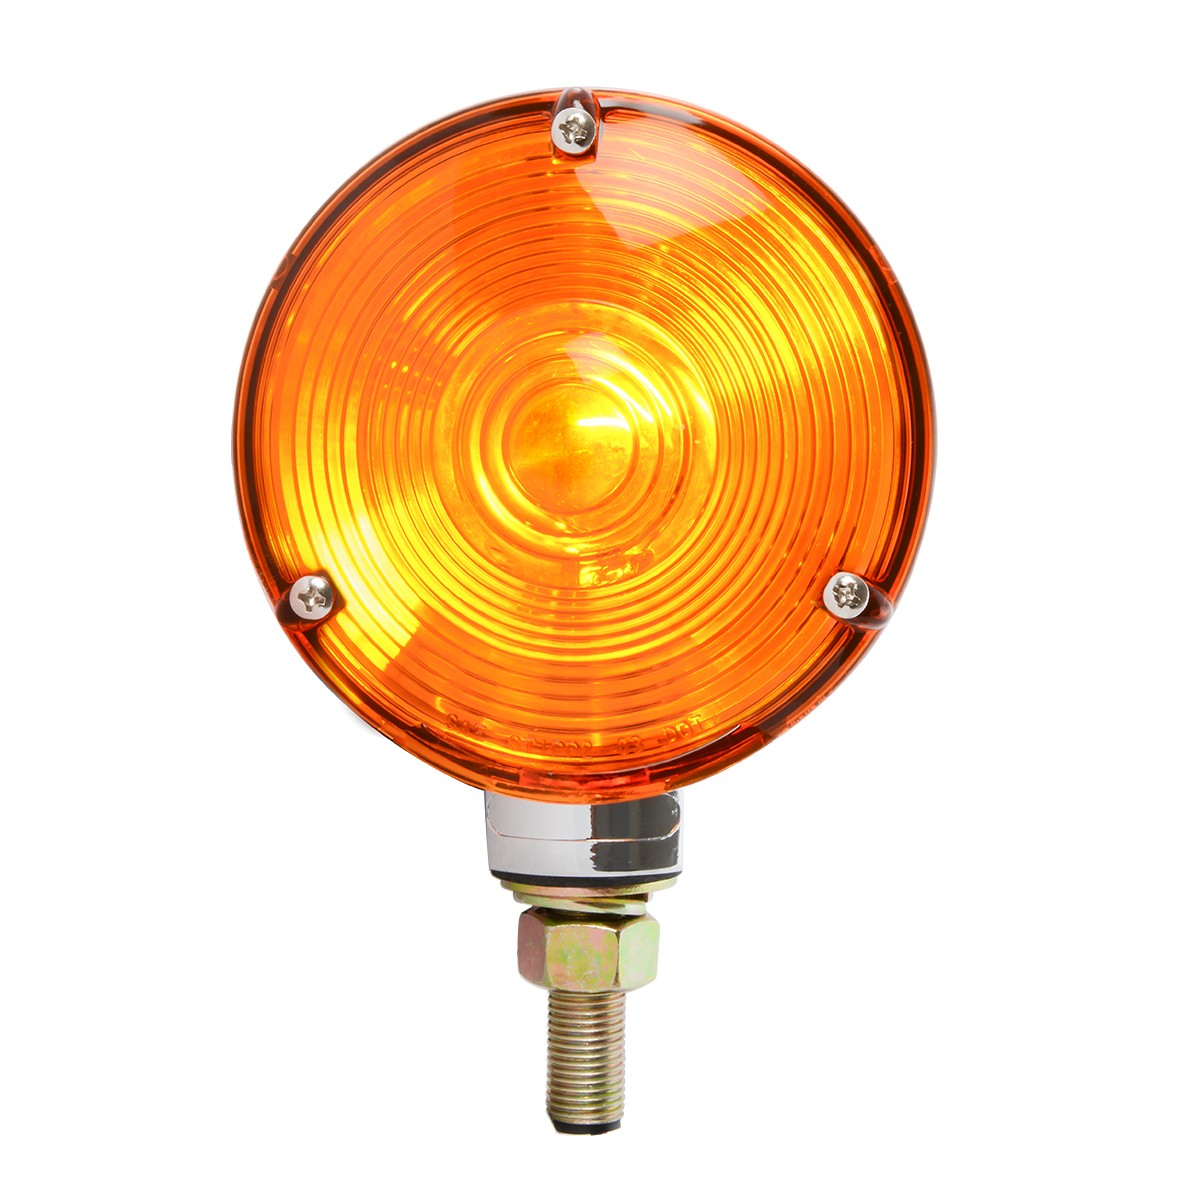 "#80501 4"" Single Face Pedestal Amber Light"